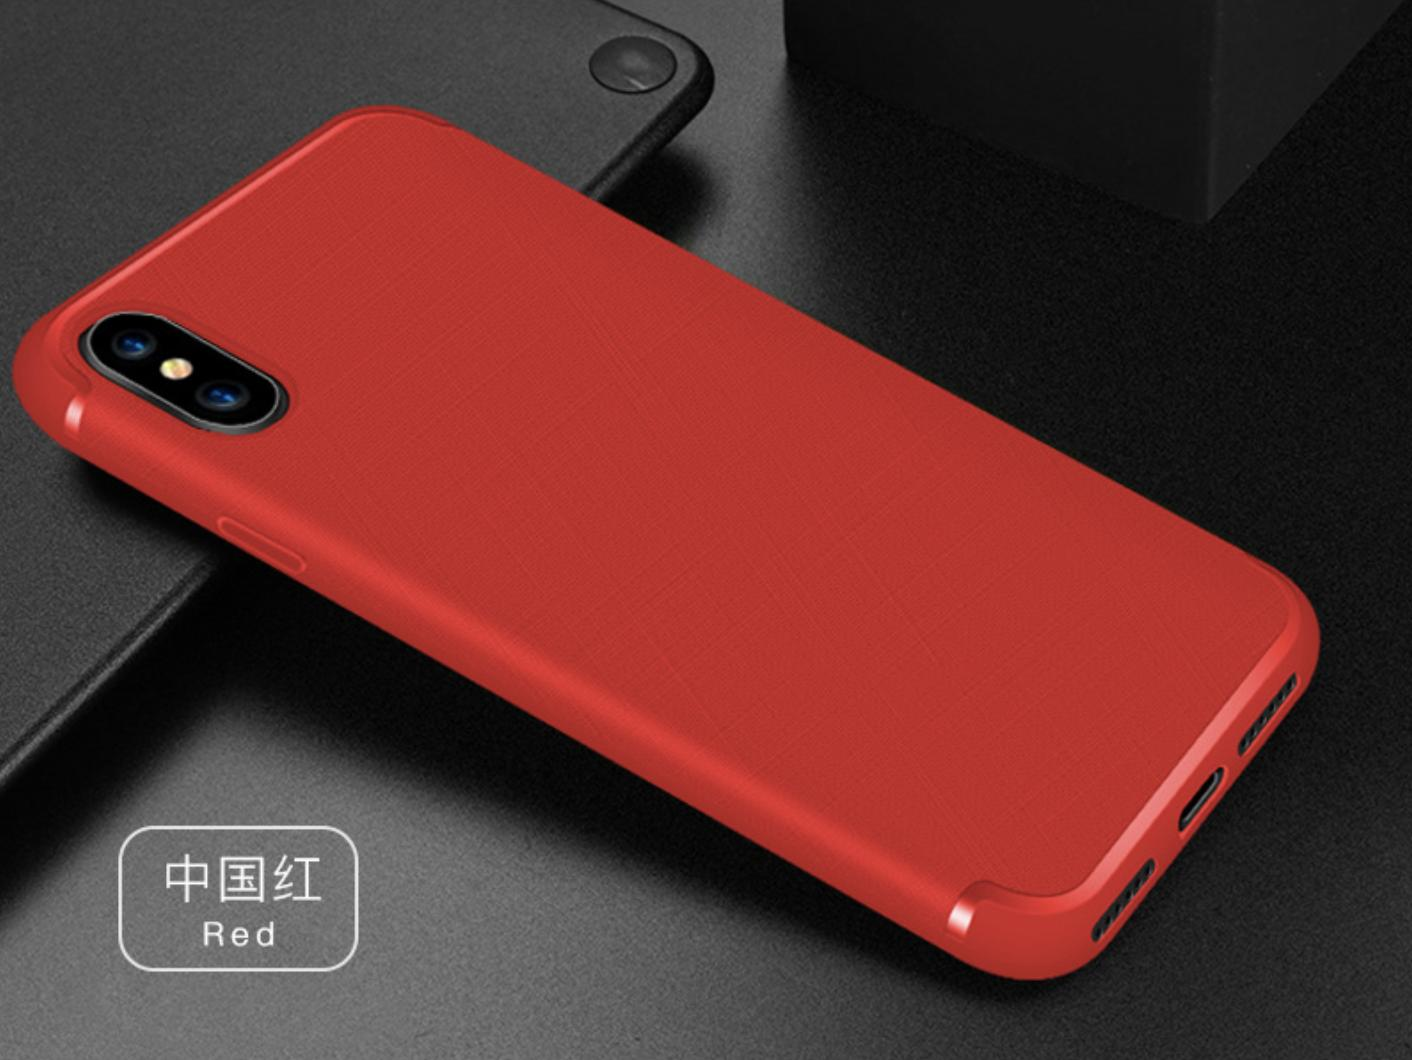 Ultra Thin Soft Silicone iPhone X, iPhone Xs Phone Cover Casing Non Slip Matte Surface Premium Quality